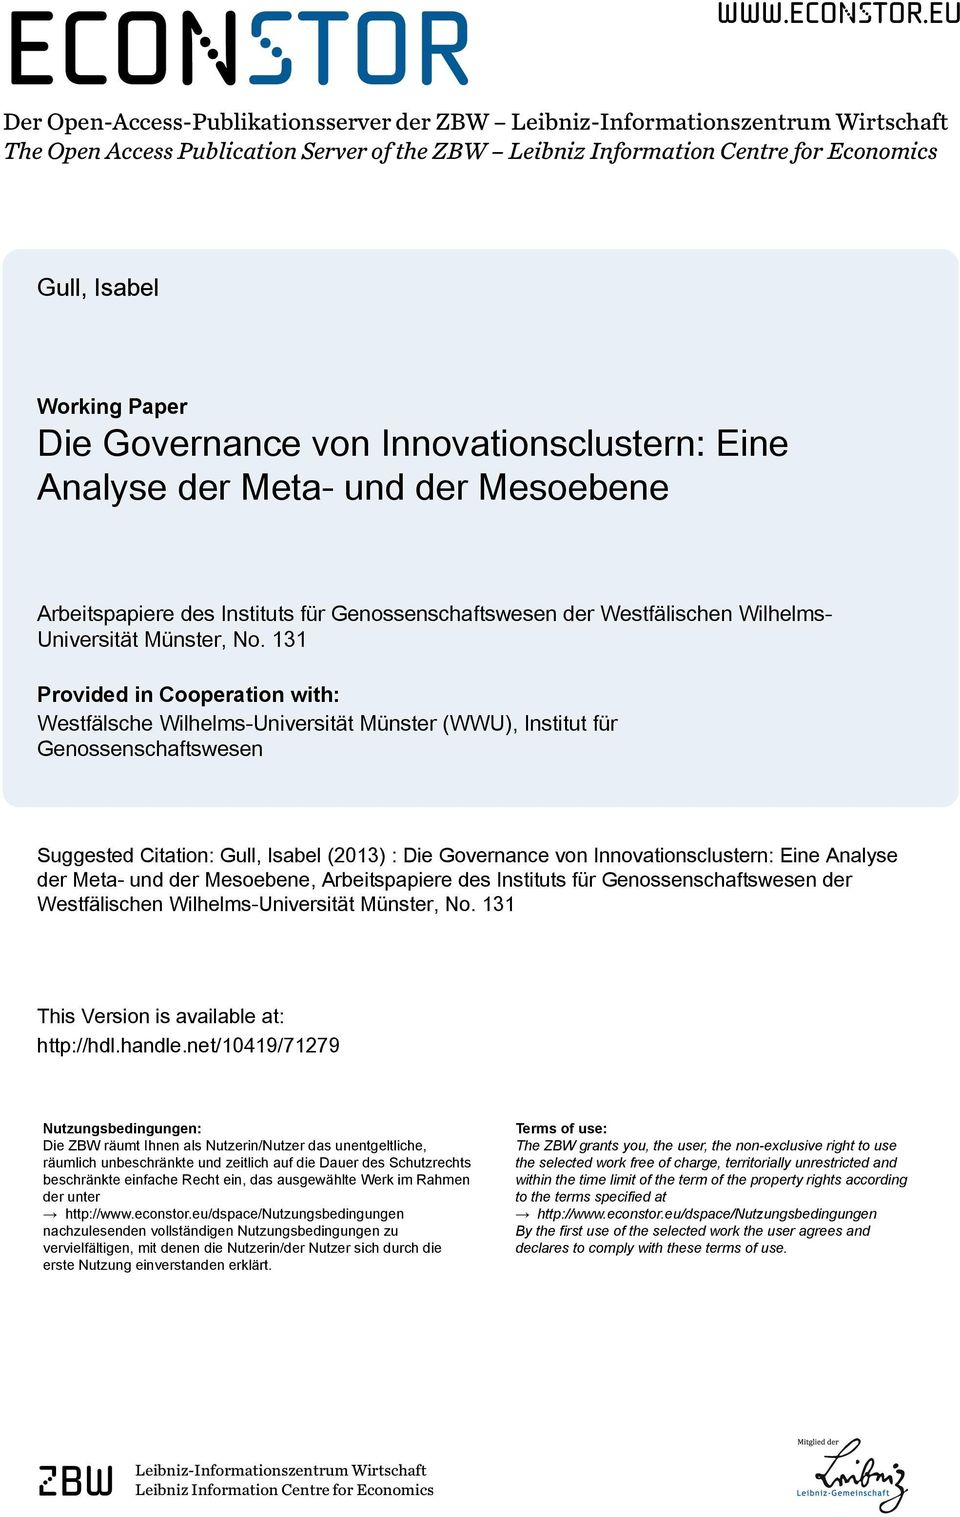 eu Der Open-Access-Publikationsserver der ZBW Leibniz-Informationszentrum Wirtschaft The Open Access Publication Server of the ZBW Leibniz Information Centre for Economics Gull, Isabel Working Paper